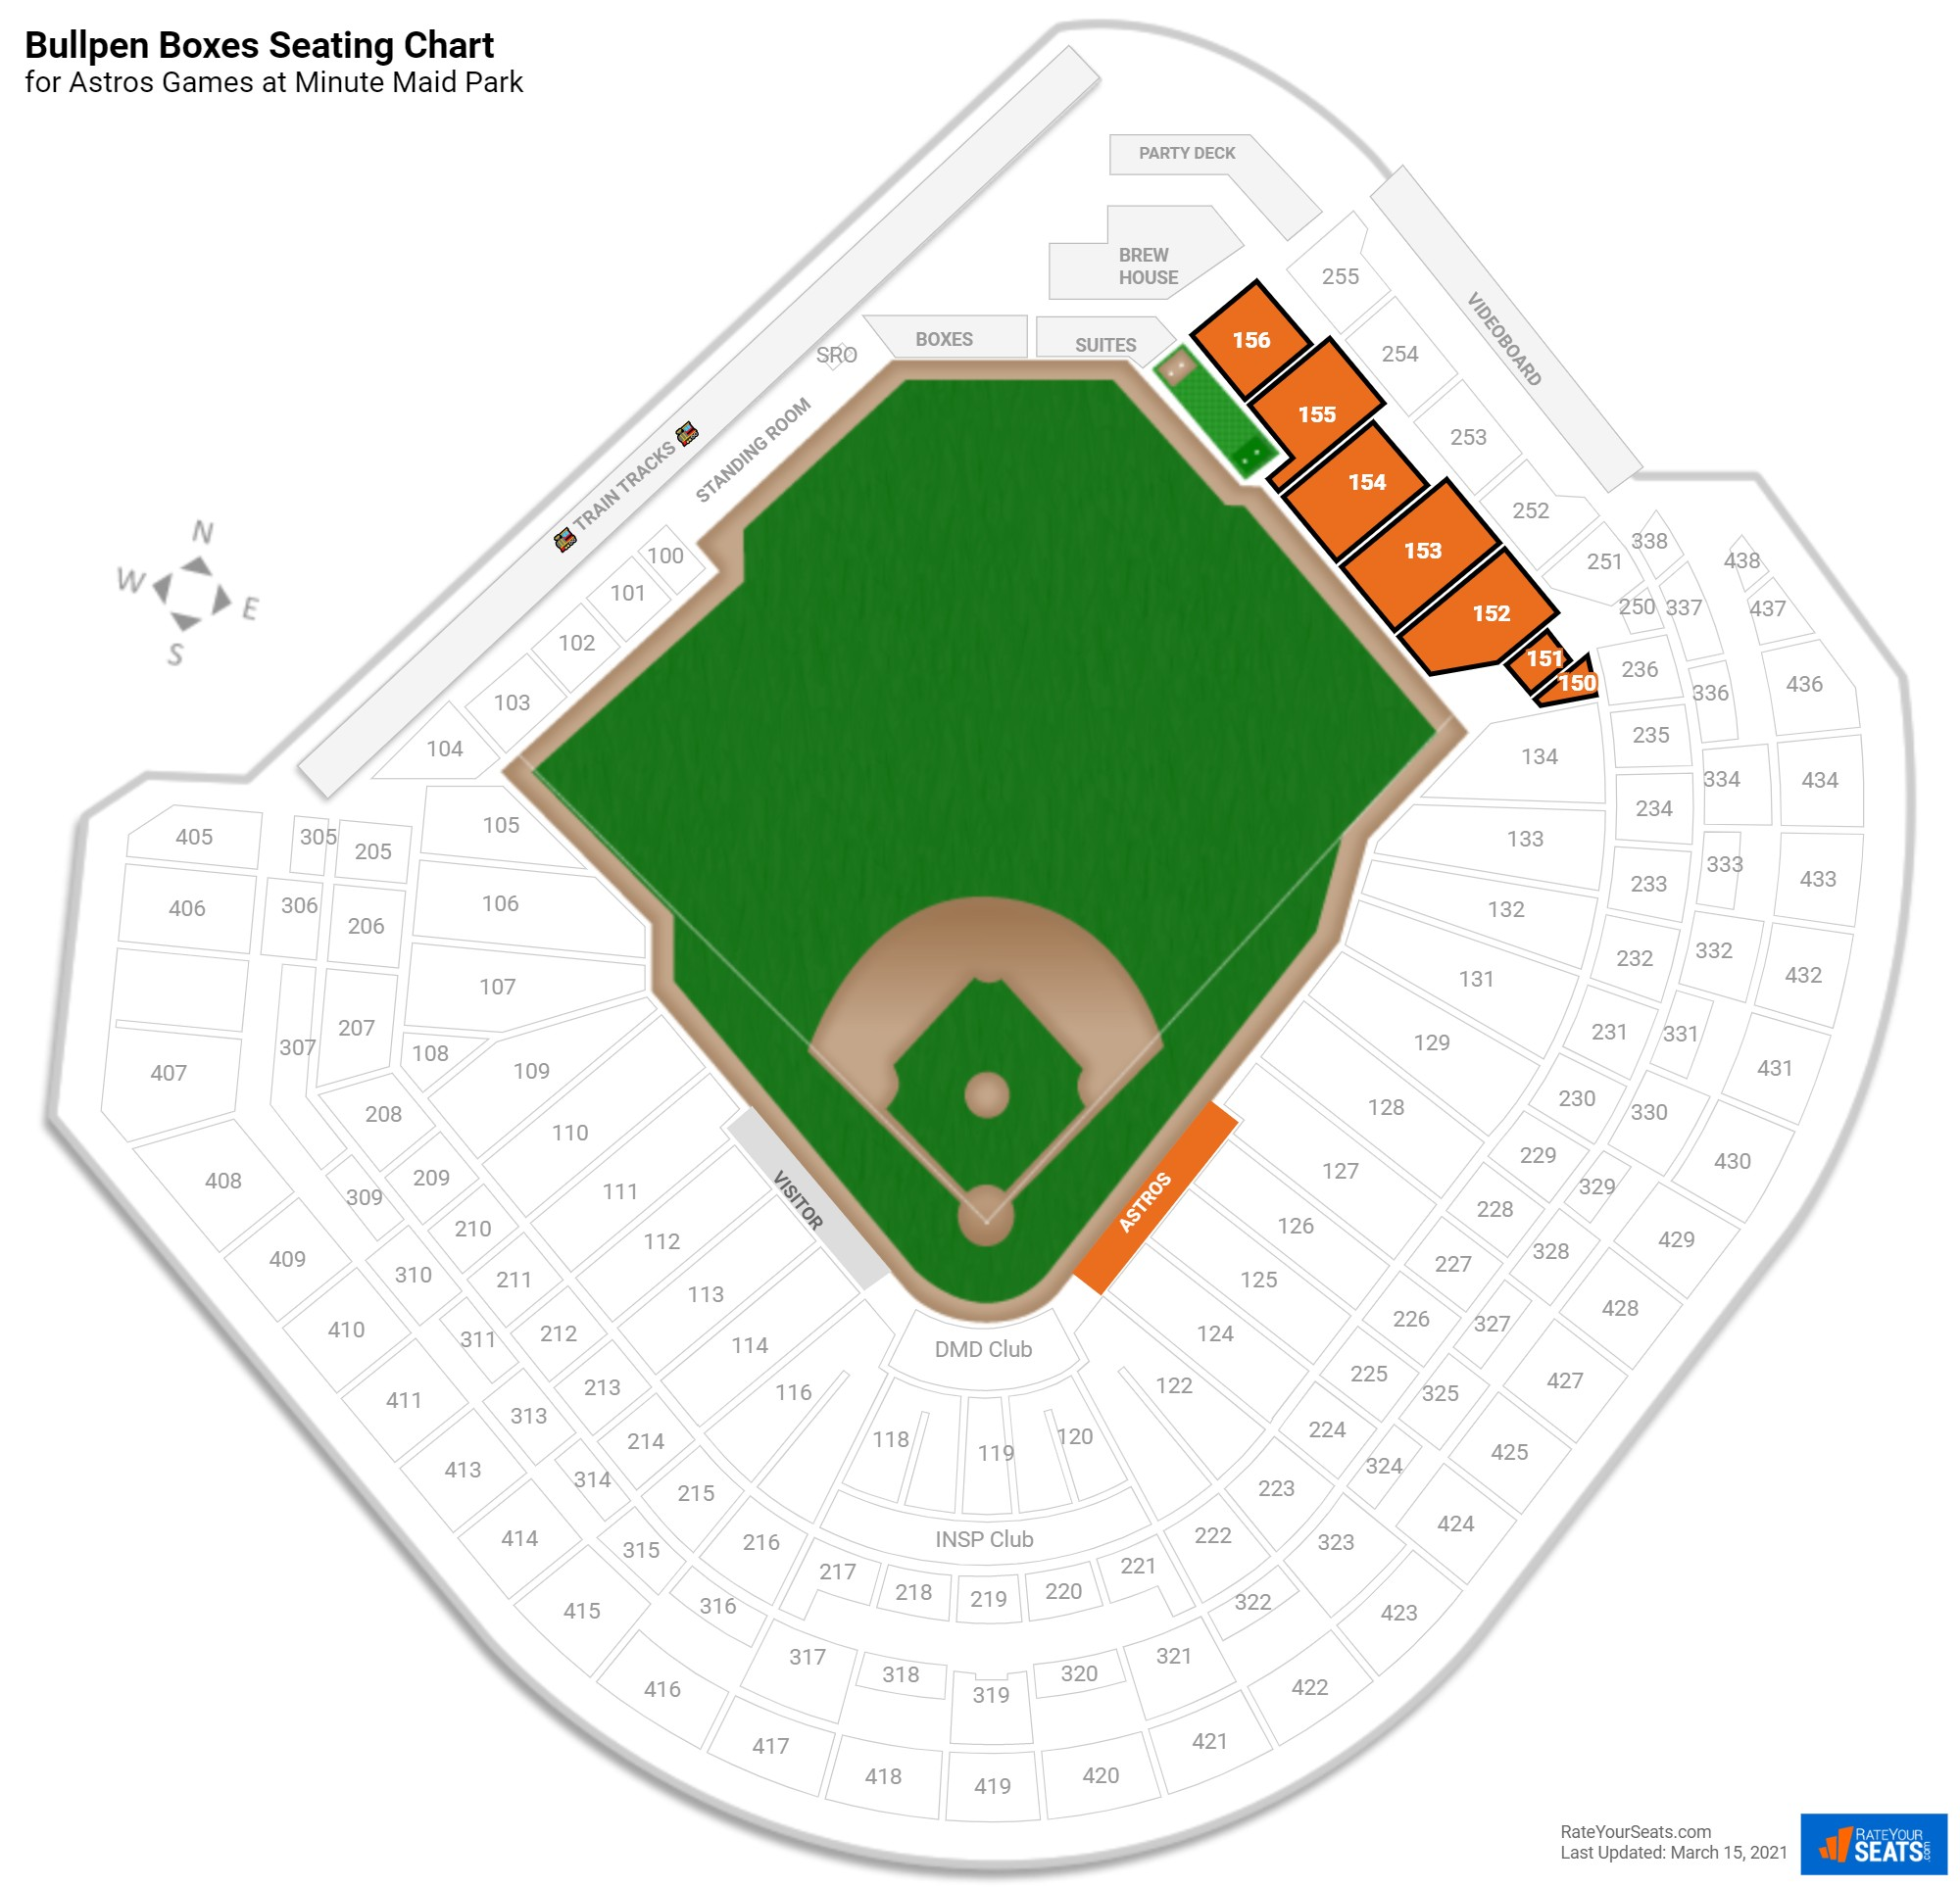 Minute Maid Park Bullpen Boxes seating chart